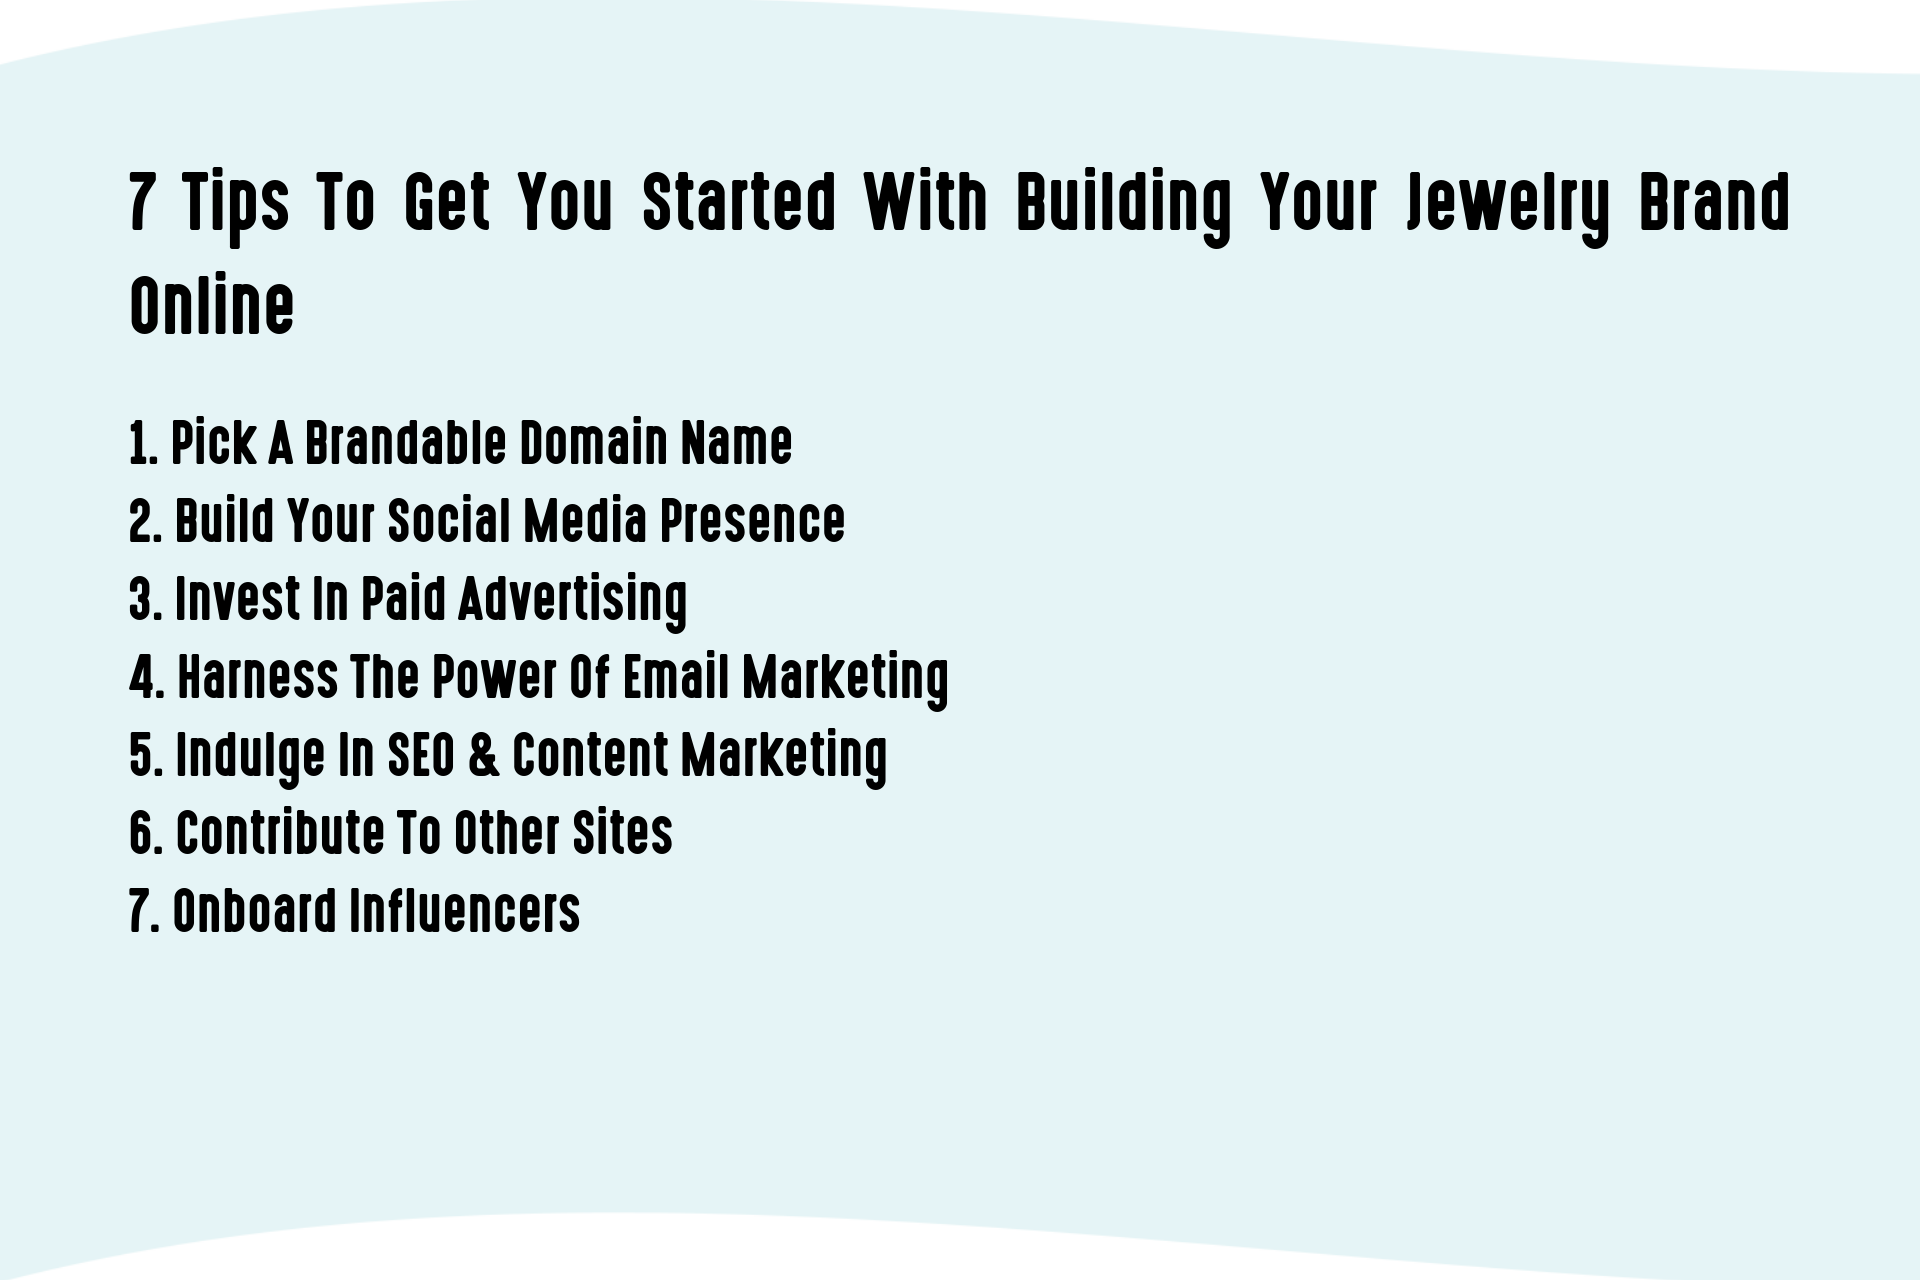 Building Your Jewelry Brand Online Check Out These Tips And 75 Ideas